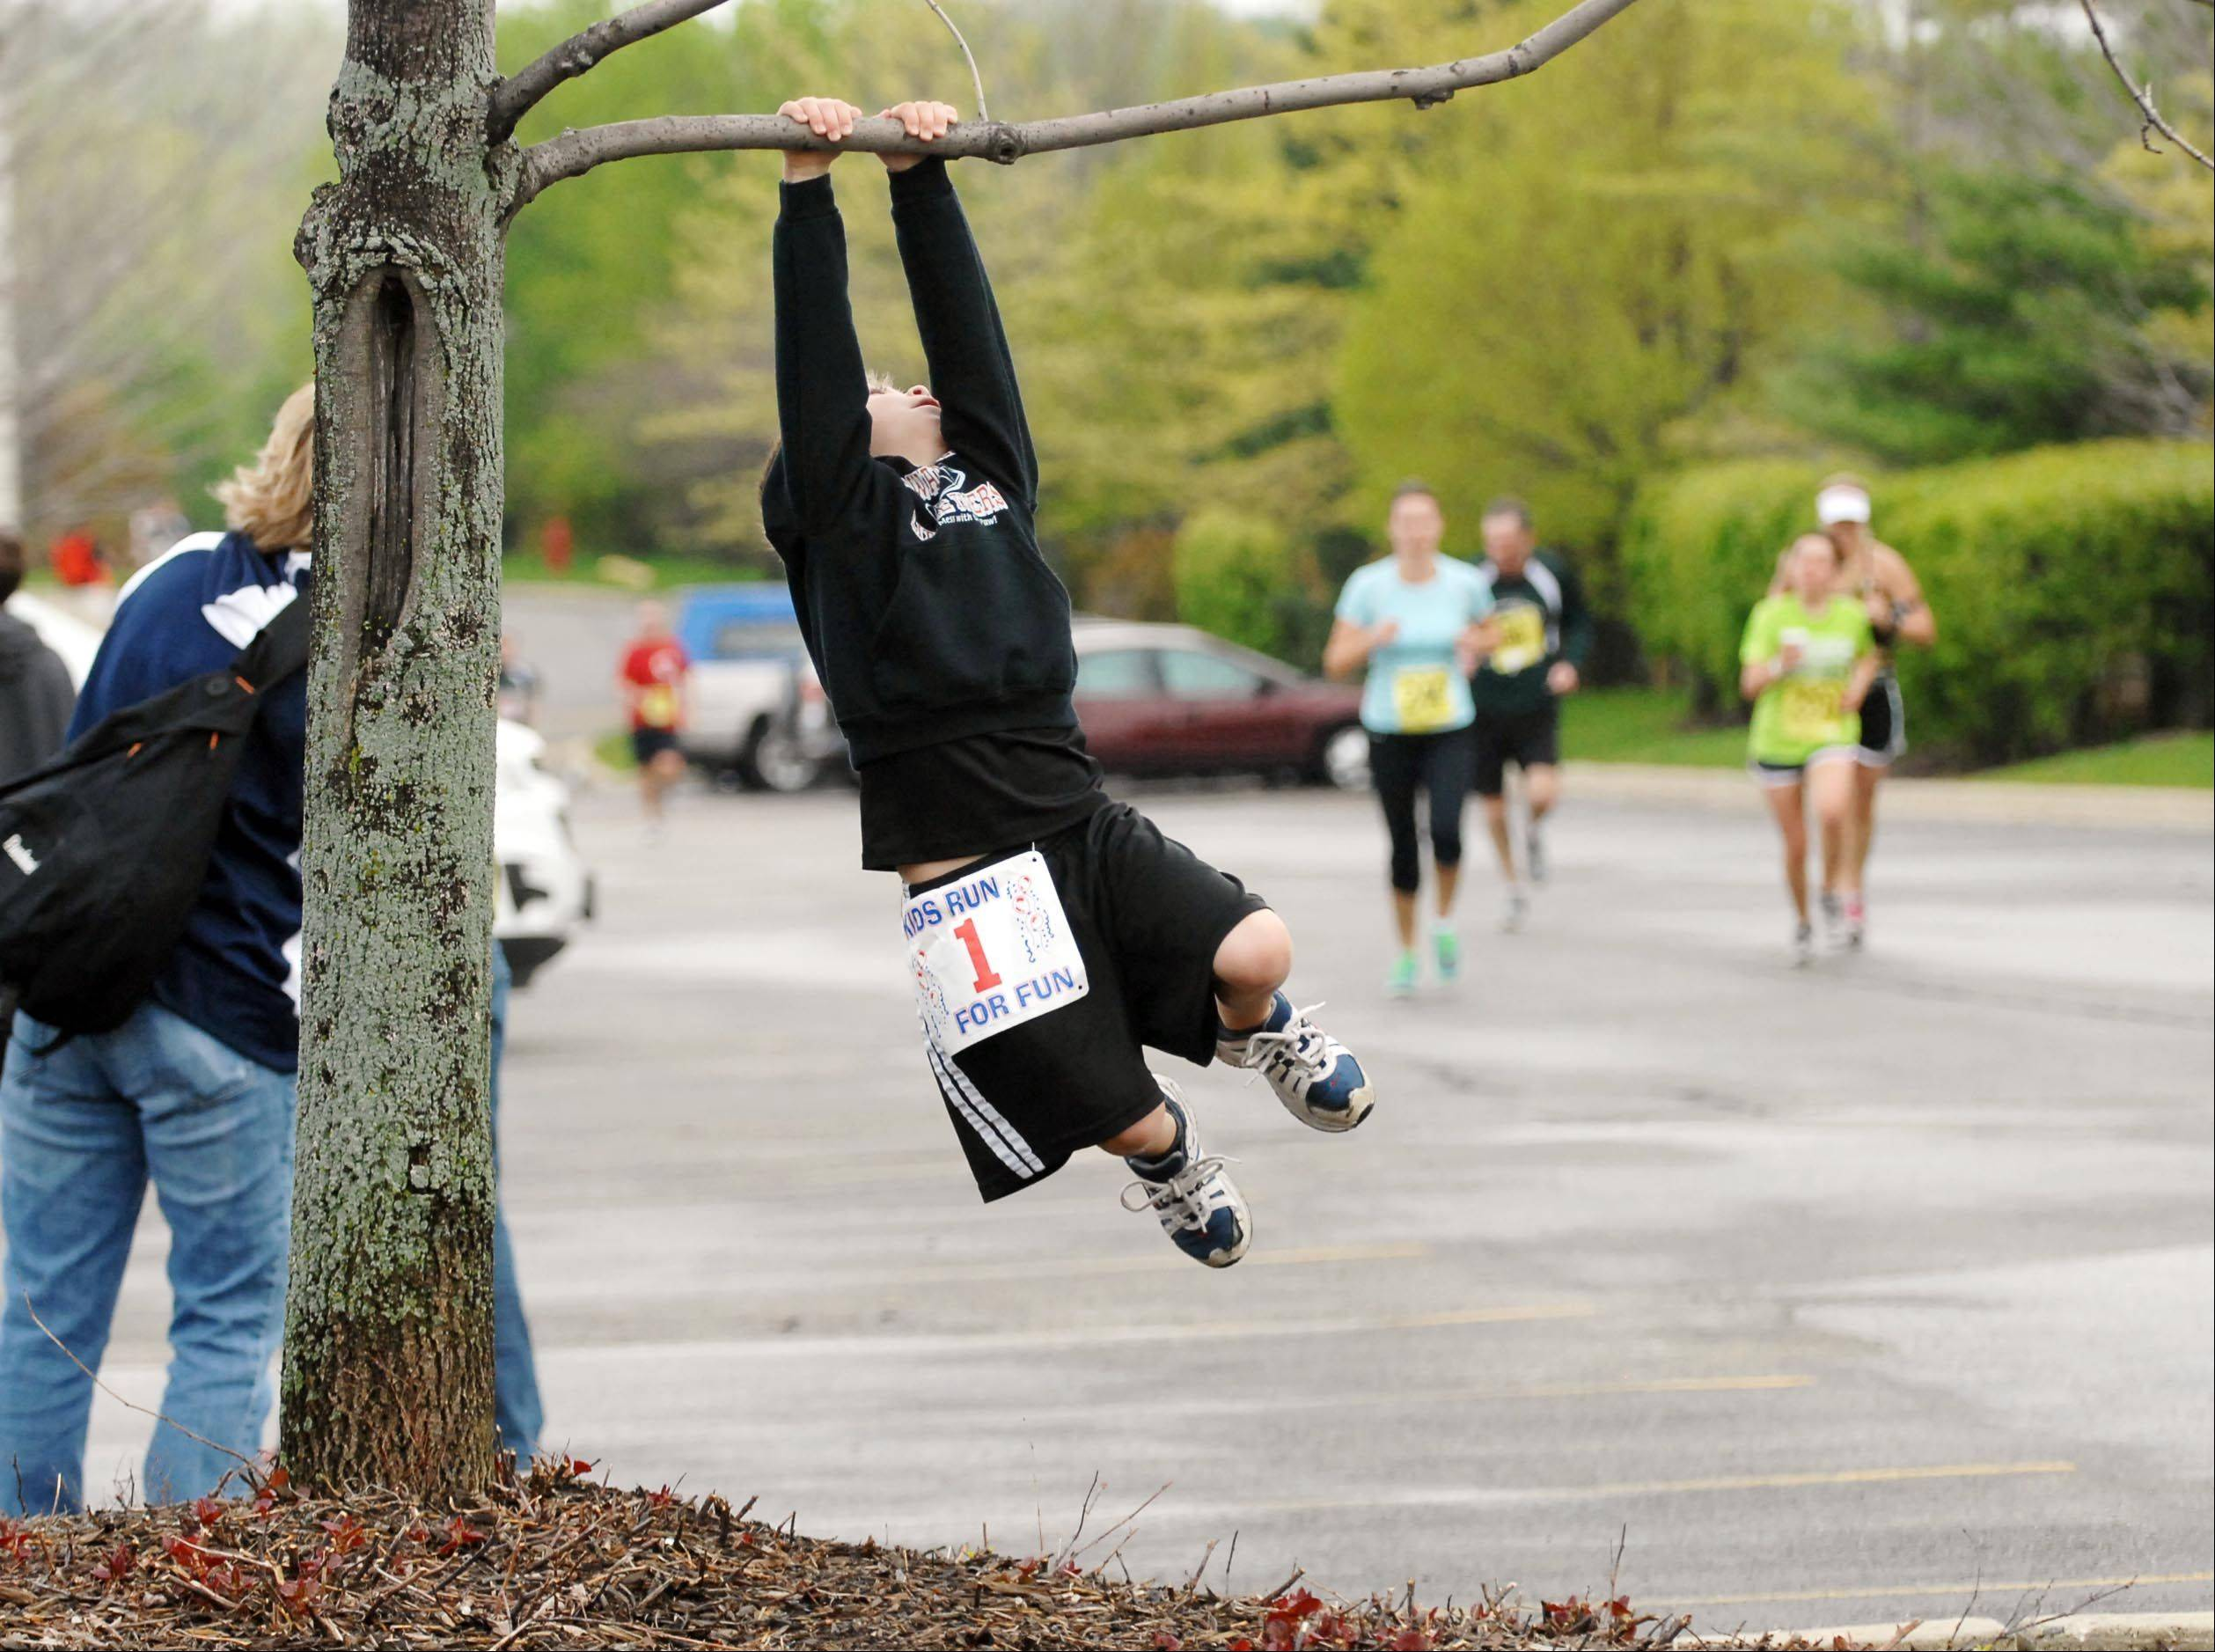 Zach Zuzzio of Lake in the Hills swings on a low branch as runners approach the last corner of Sunday morning's Run Through The Hills 5K and 10K races in Lake in the Hills. The six-year-old was with his mom Michelle. He ran in the kids race while his father ran the 10K.